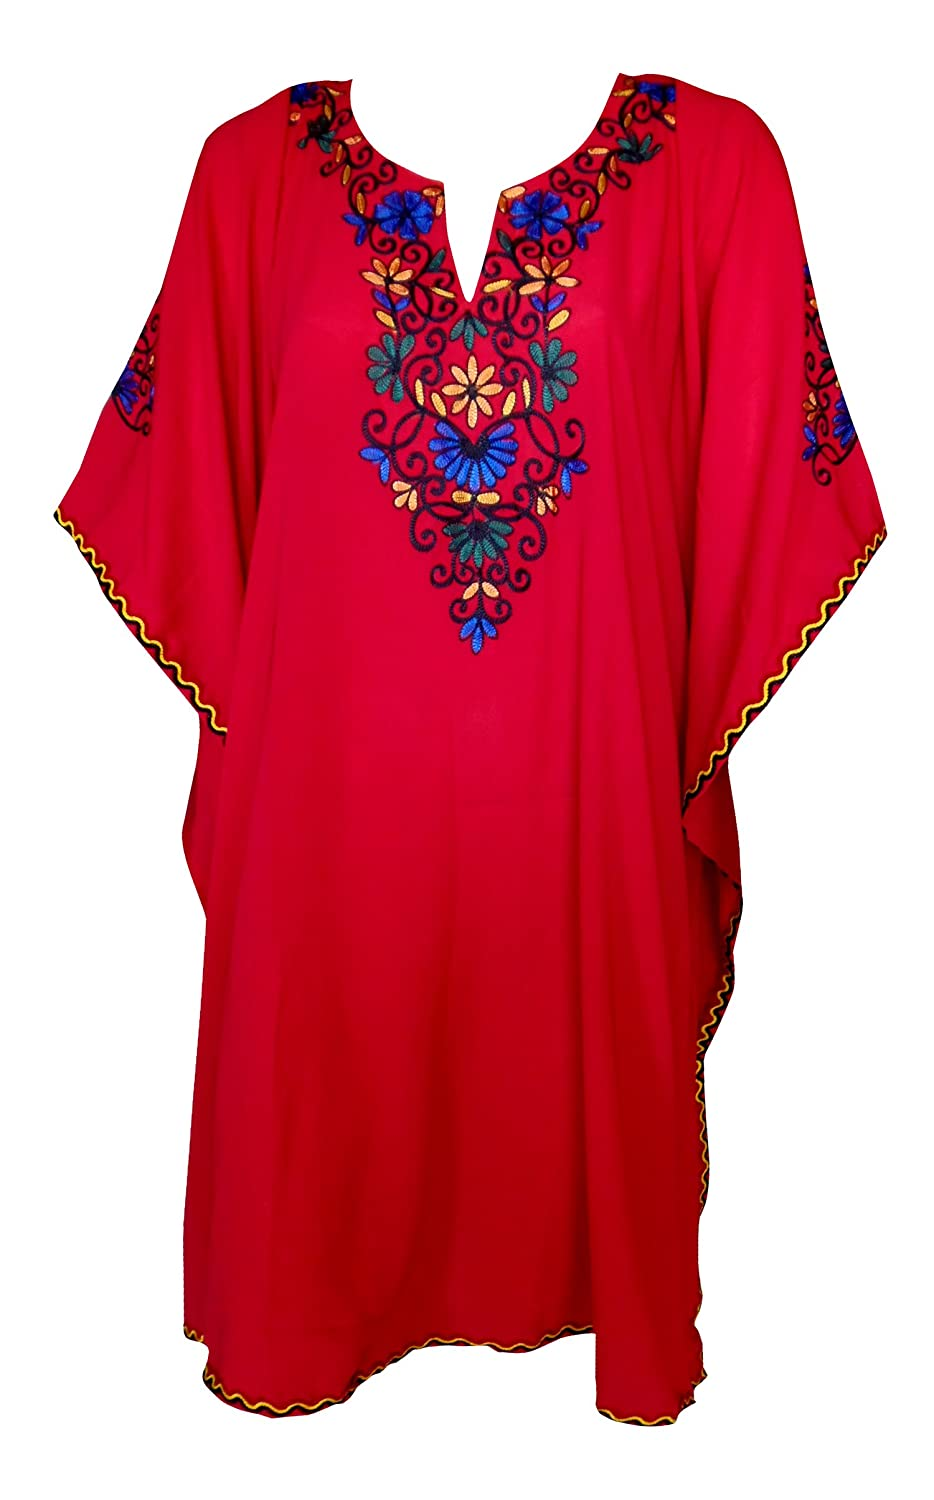 SUNROSE Red Chain Stitched Embroidered Beach Cover up Swim Kaftan Caftan